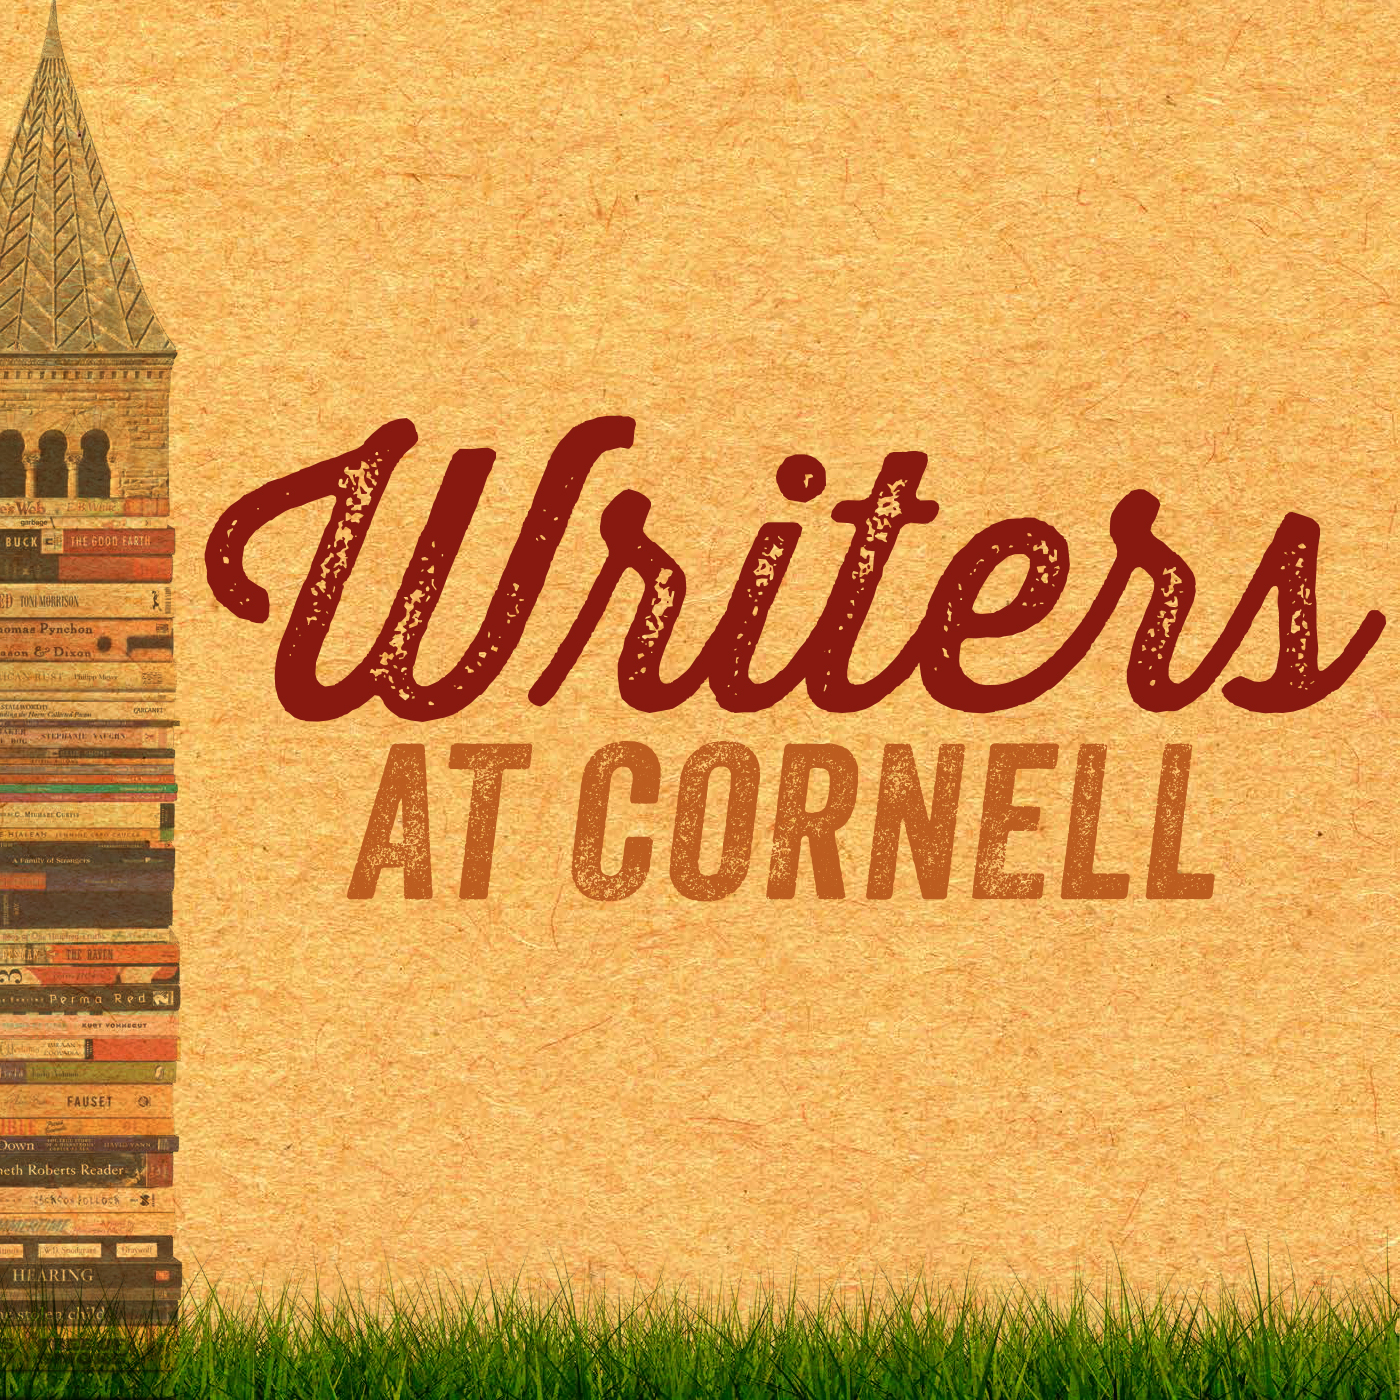 WRITERS AT CORNELL. - J. Robert Lennon